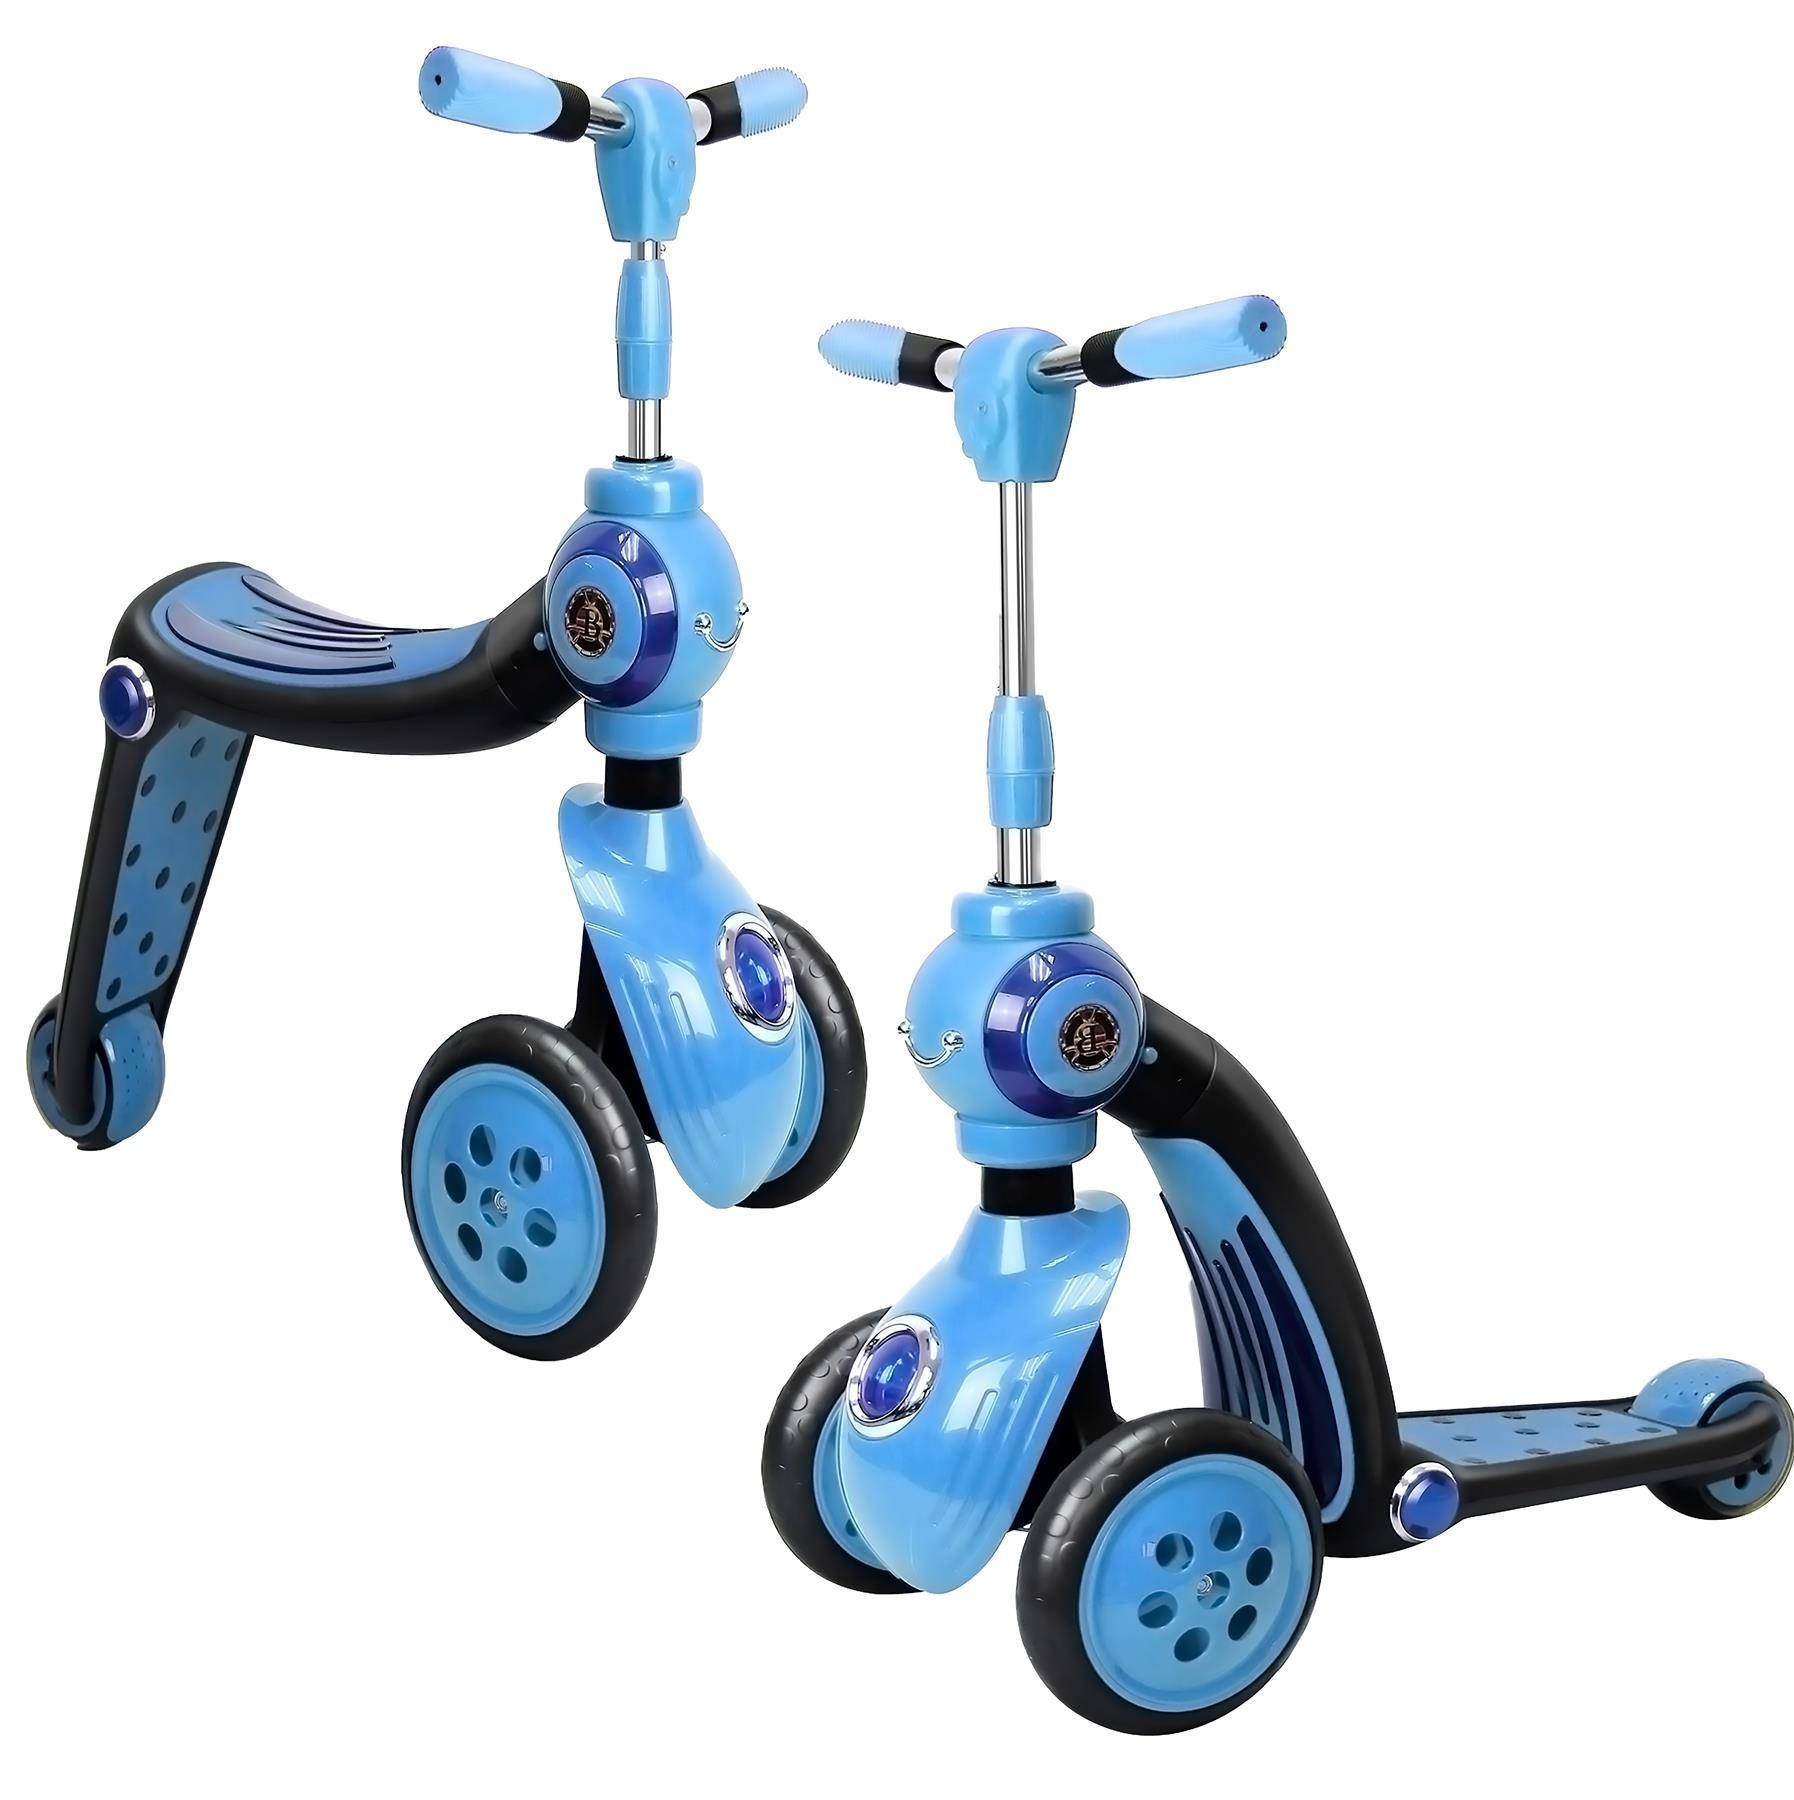 2-in-1 Switch Scooter, Transforms From Trike To A Scooter, Ride-on,